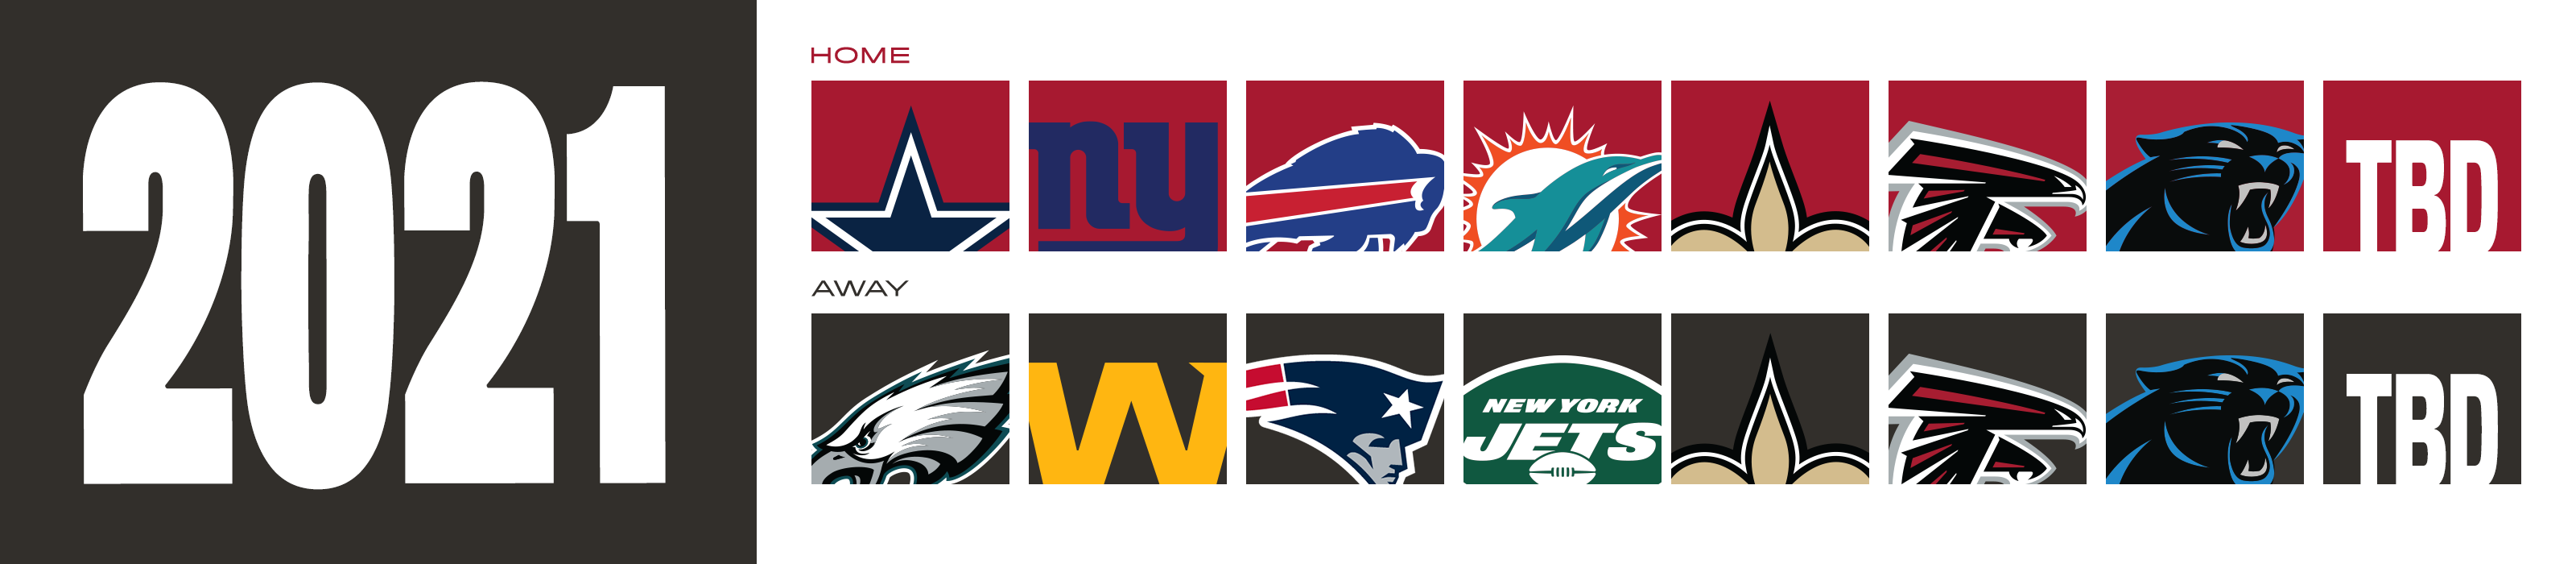 2021 Opponents - home - cowboys, giants, bills, dolphins, saints, falcons, panthers, tbd away- eagles, washington, patriots, jets, saints, falcons, panthers, tbd